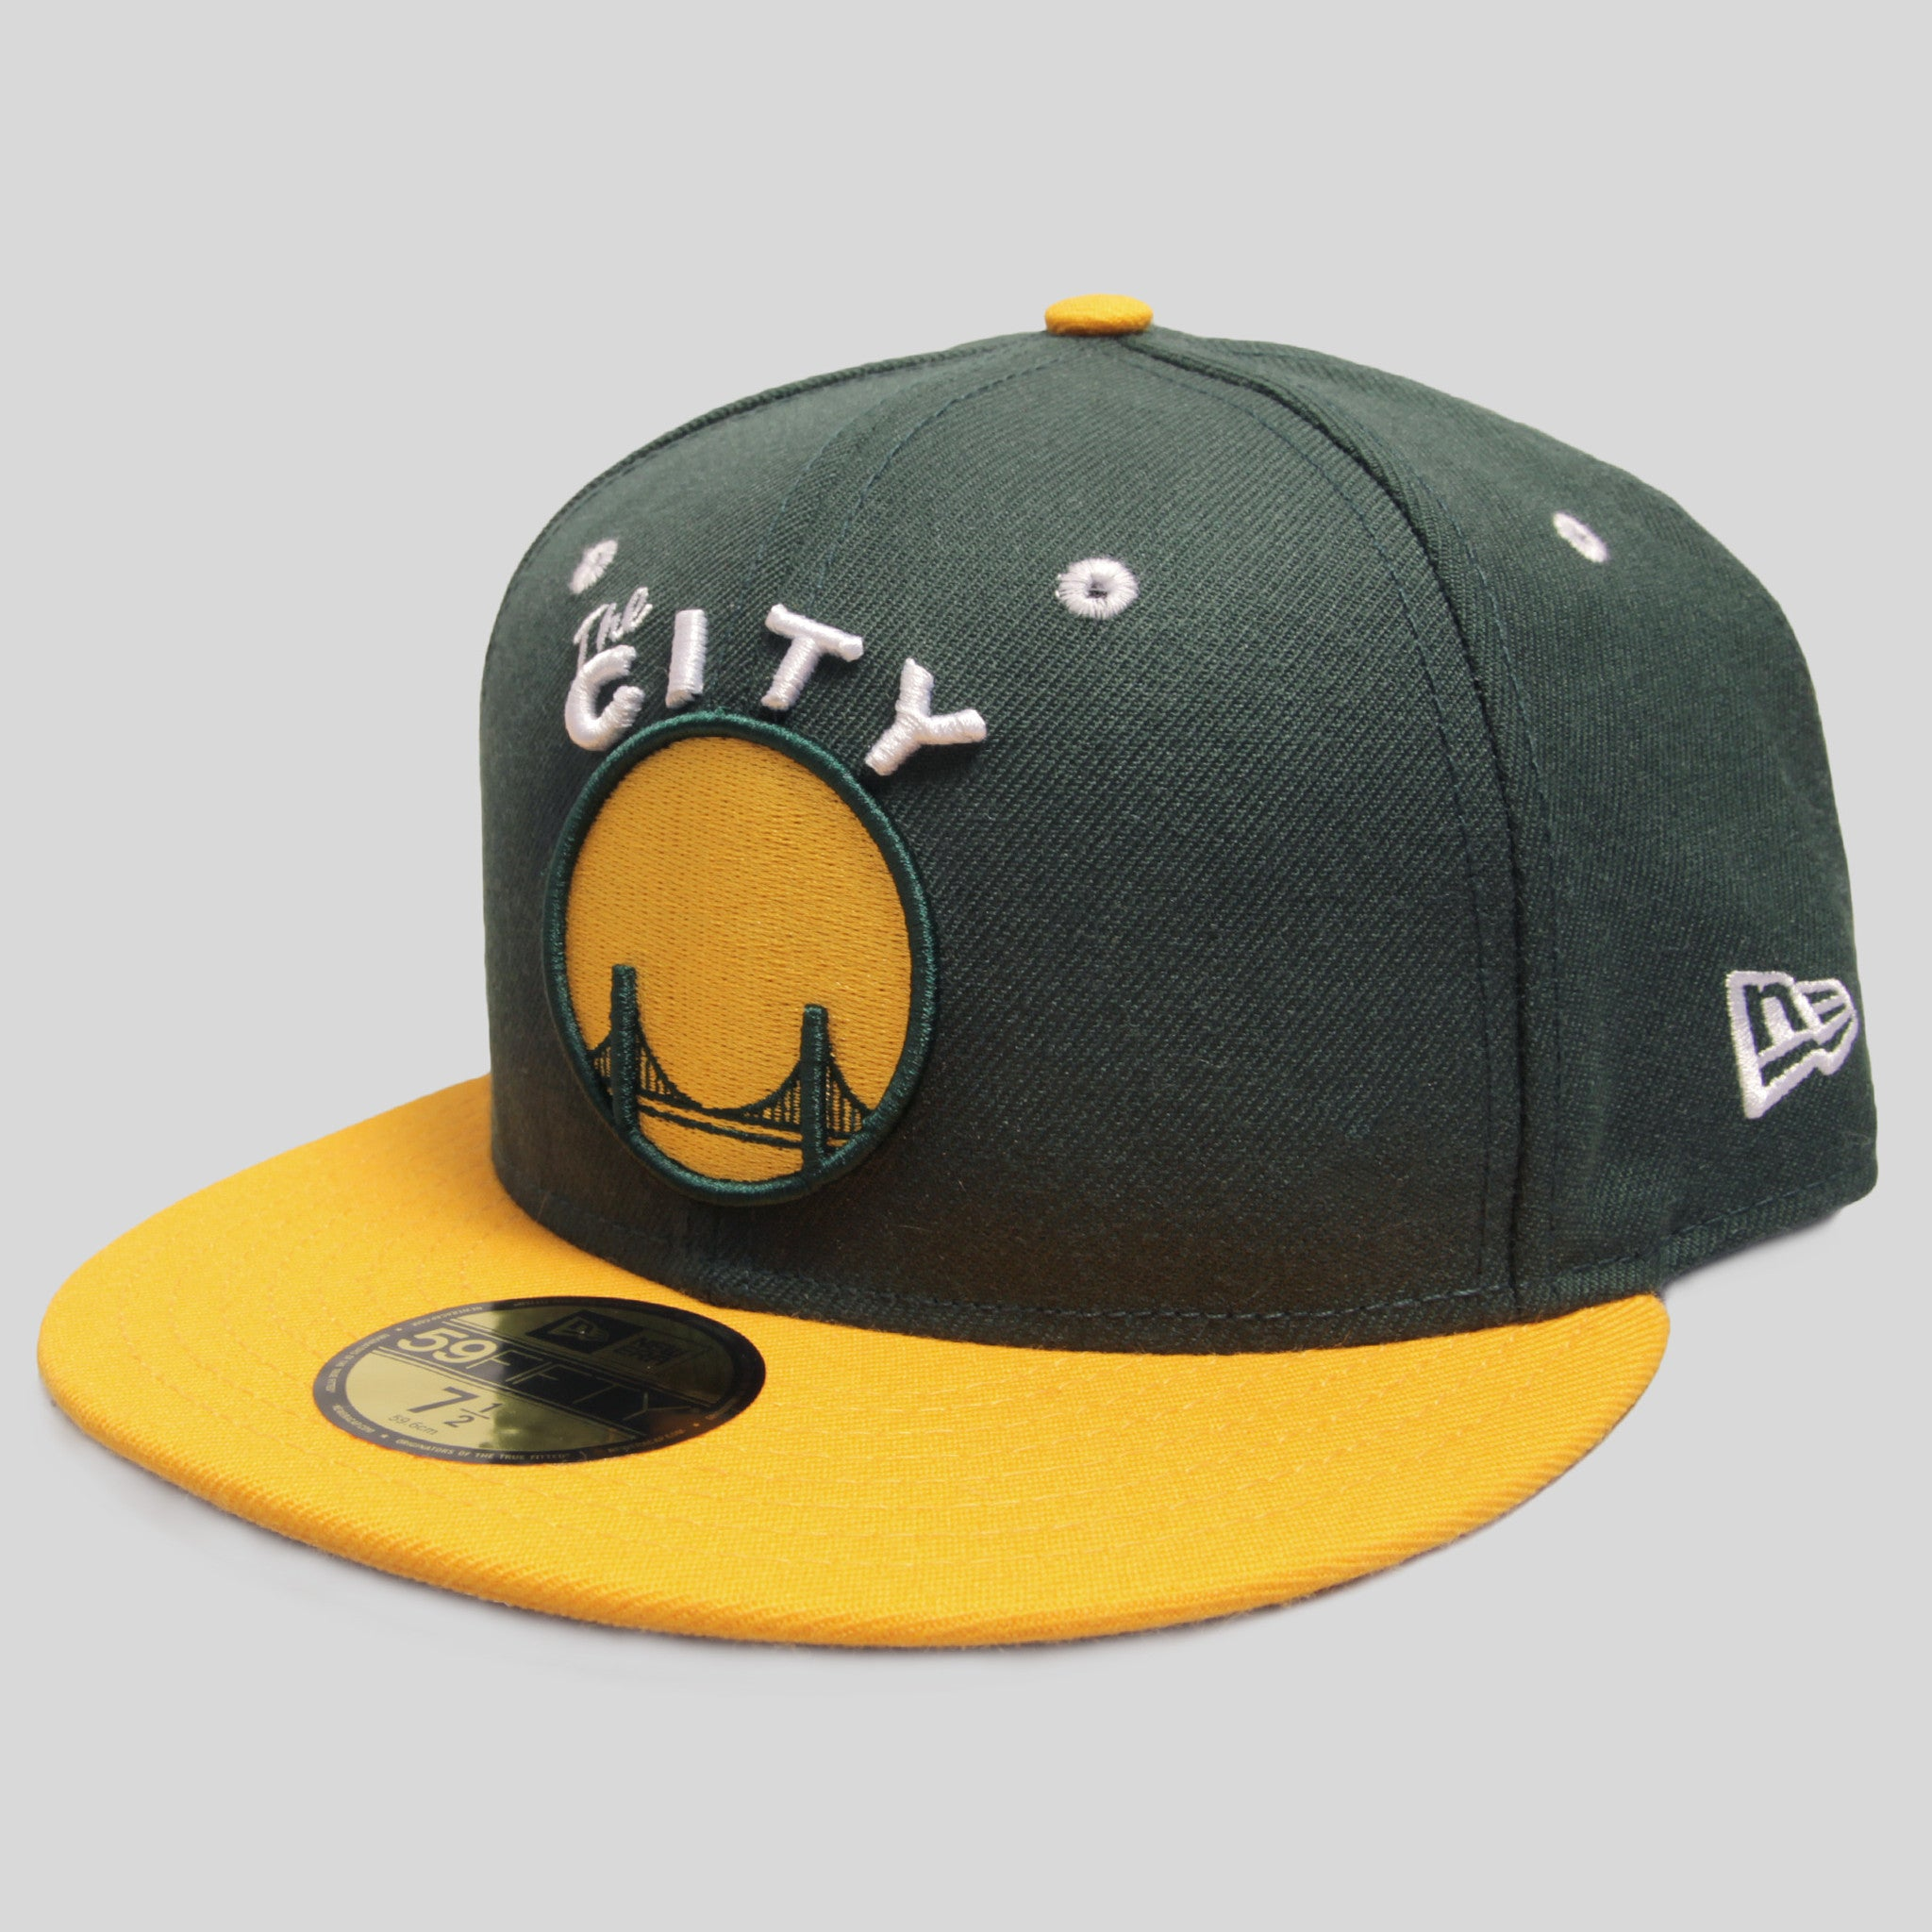 8c5d83d8e7817 Upper Playground - Lux - THE CITY New Era Fitted Cap in Green Gold